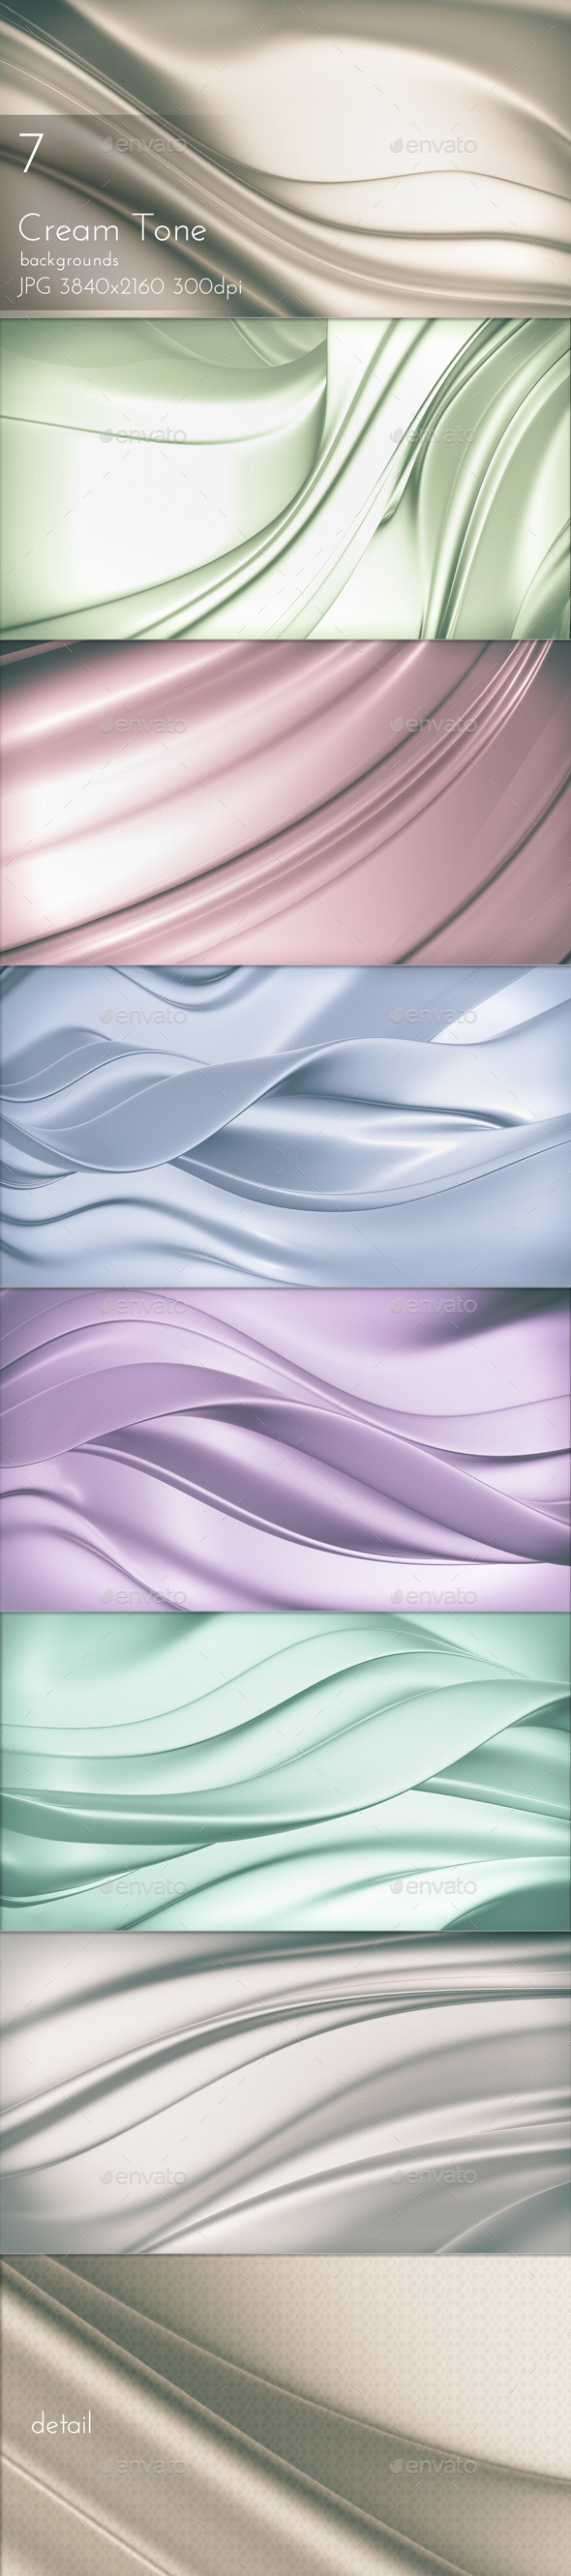 Cream Backgrounds - Abstract Backgrounds